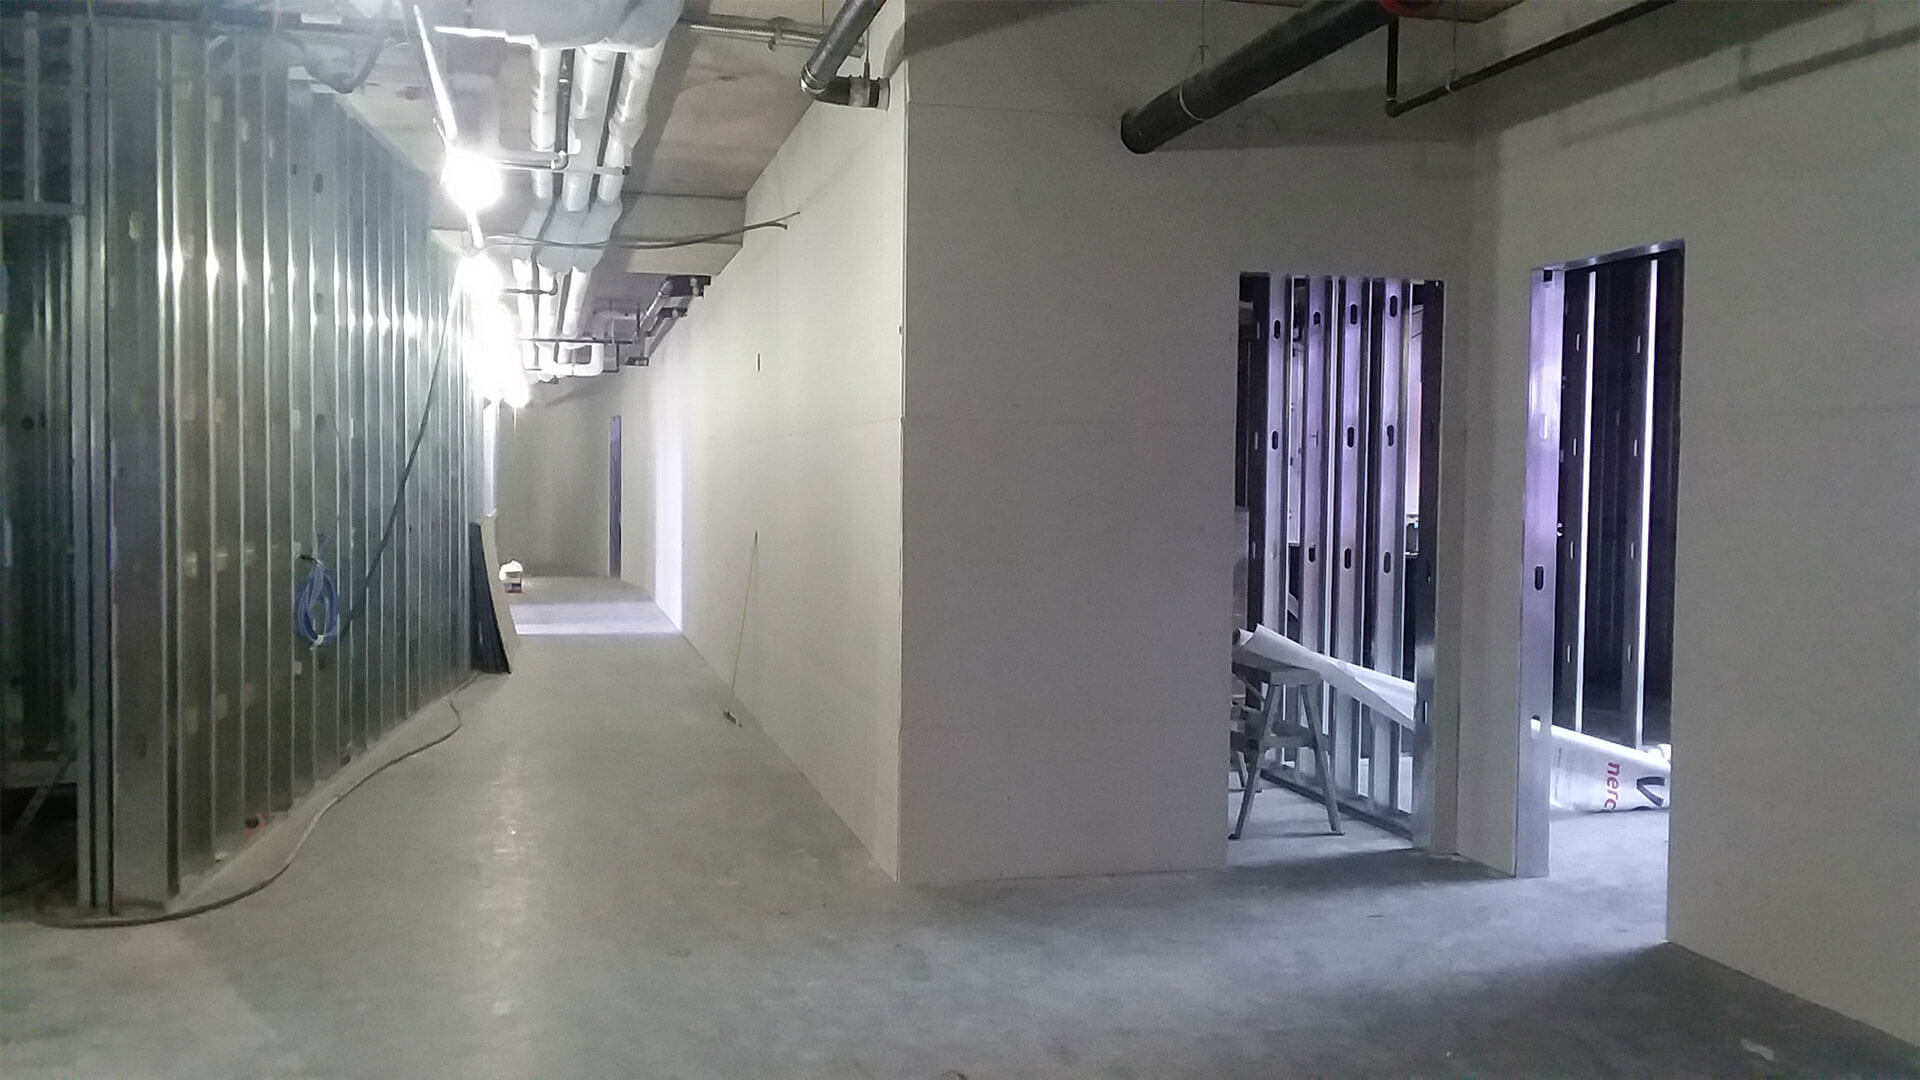 Construction at Stateside Apartments